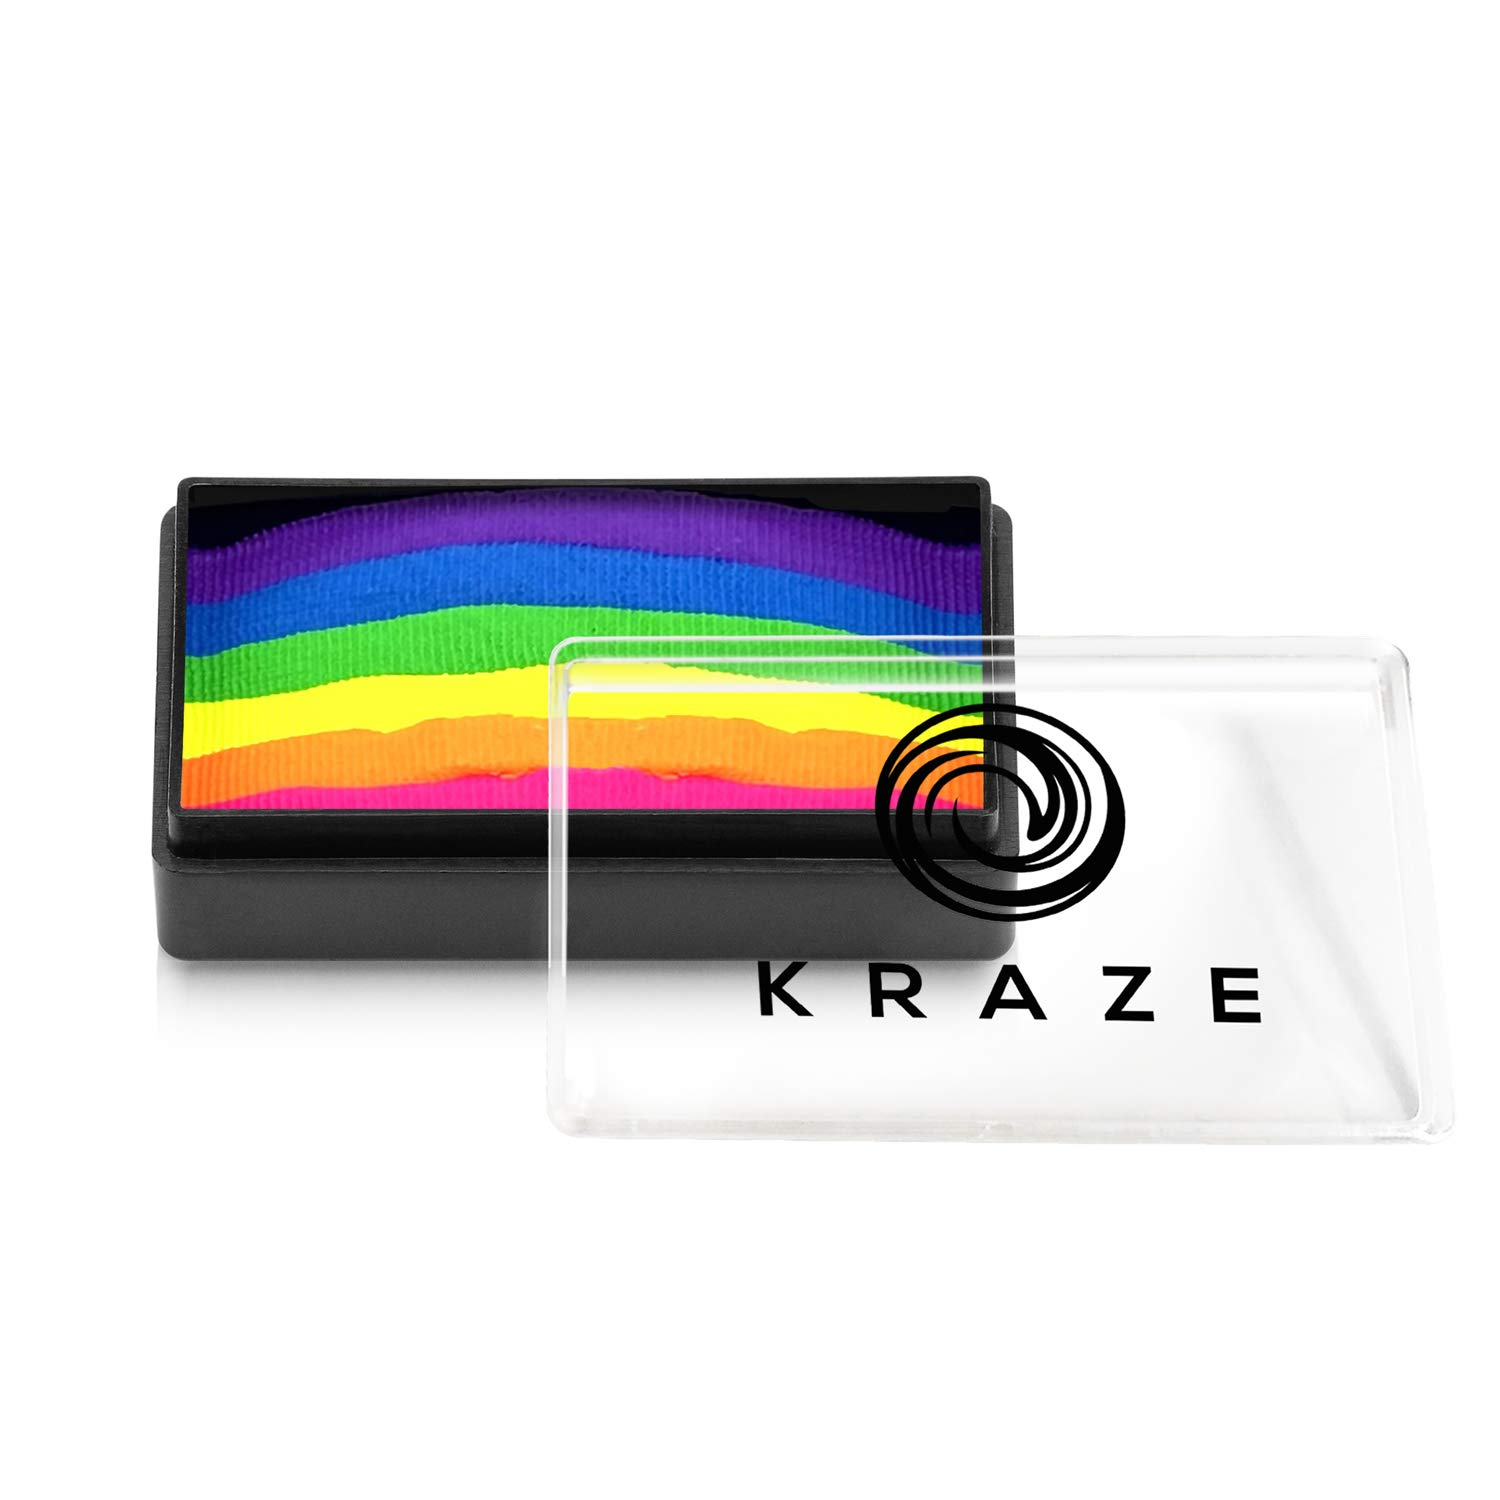 Kraze FX Dome Stroke - Bright Neon (25 gm), Water Activated, Professional UV Glow Blacklight Reactive Face and Body Painting Rainbow Cakes, Hypoallergenic, Safe, 1-Stroke Split Cake